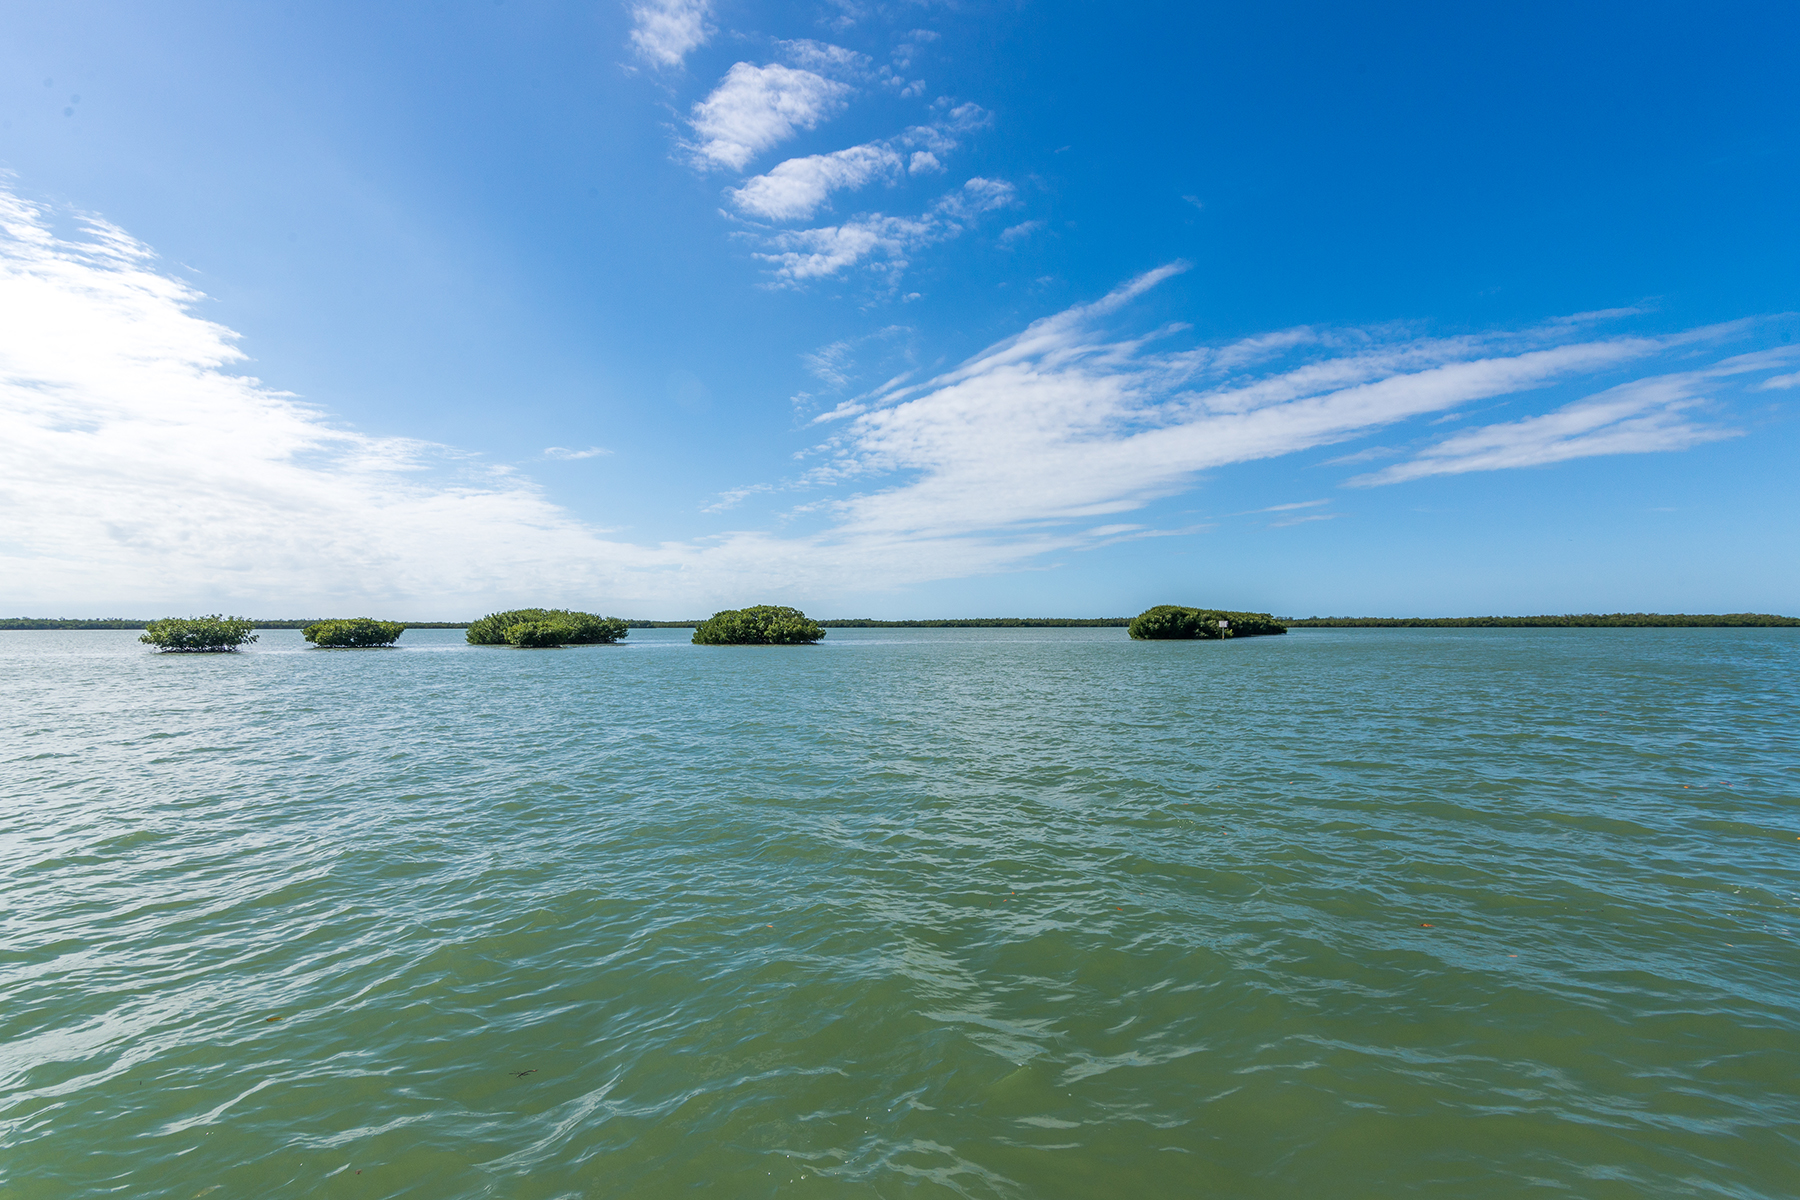 Land for Sale at MARCO ISLAND - INLET DRIVE S 1829 S Inlet Dr Marco Island, Florida, 34145 United States